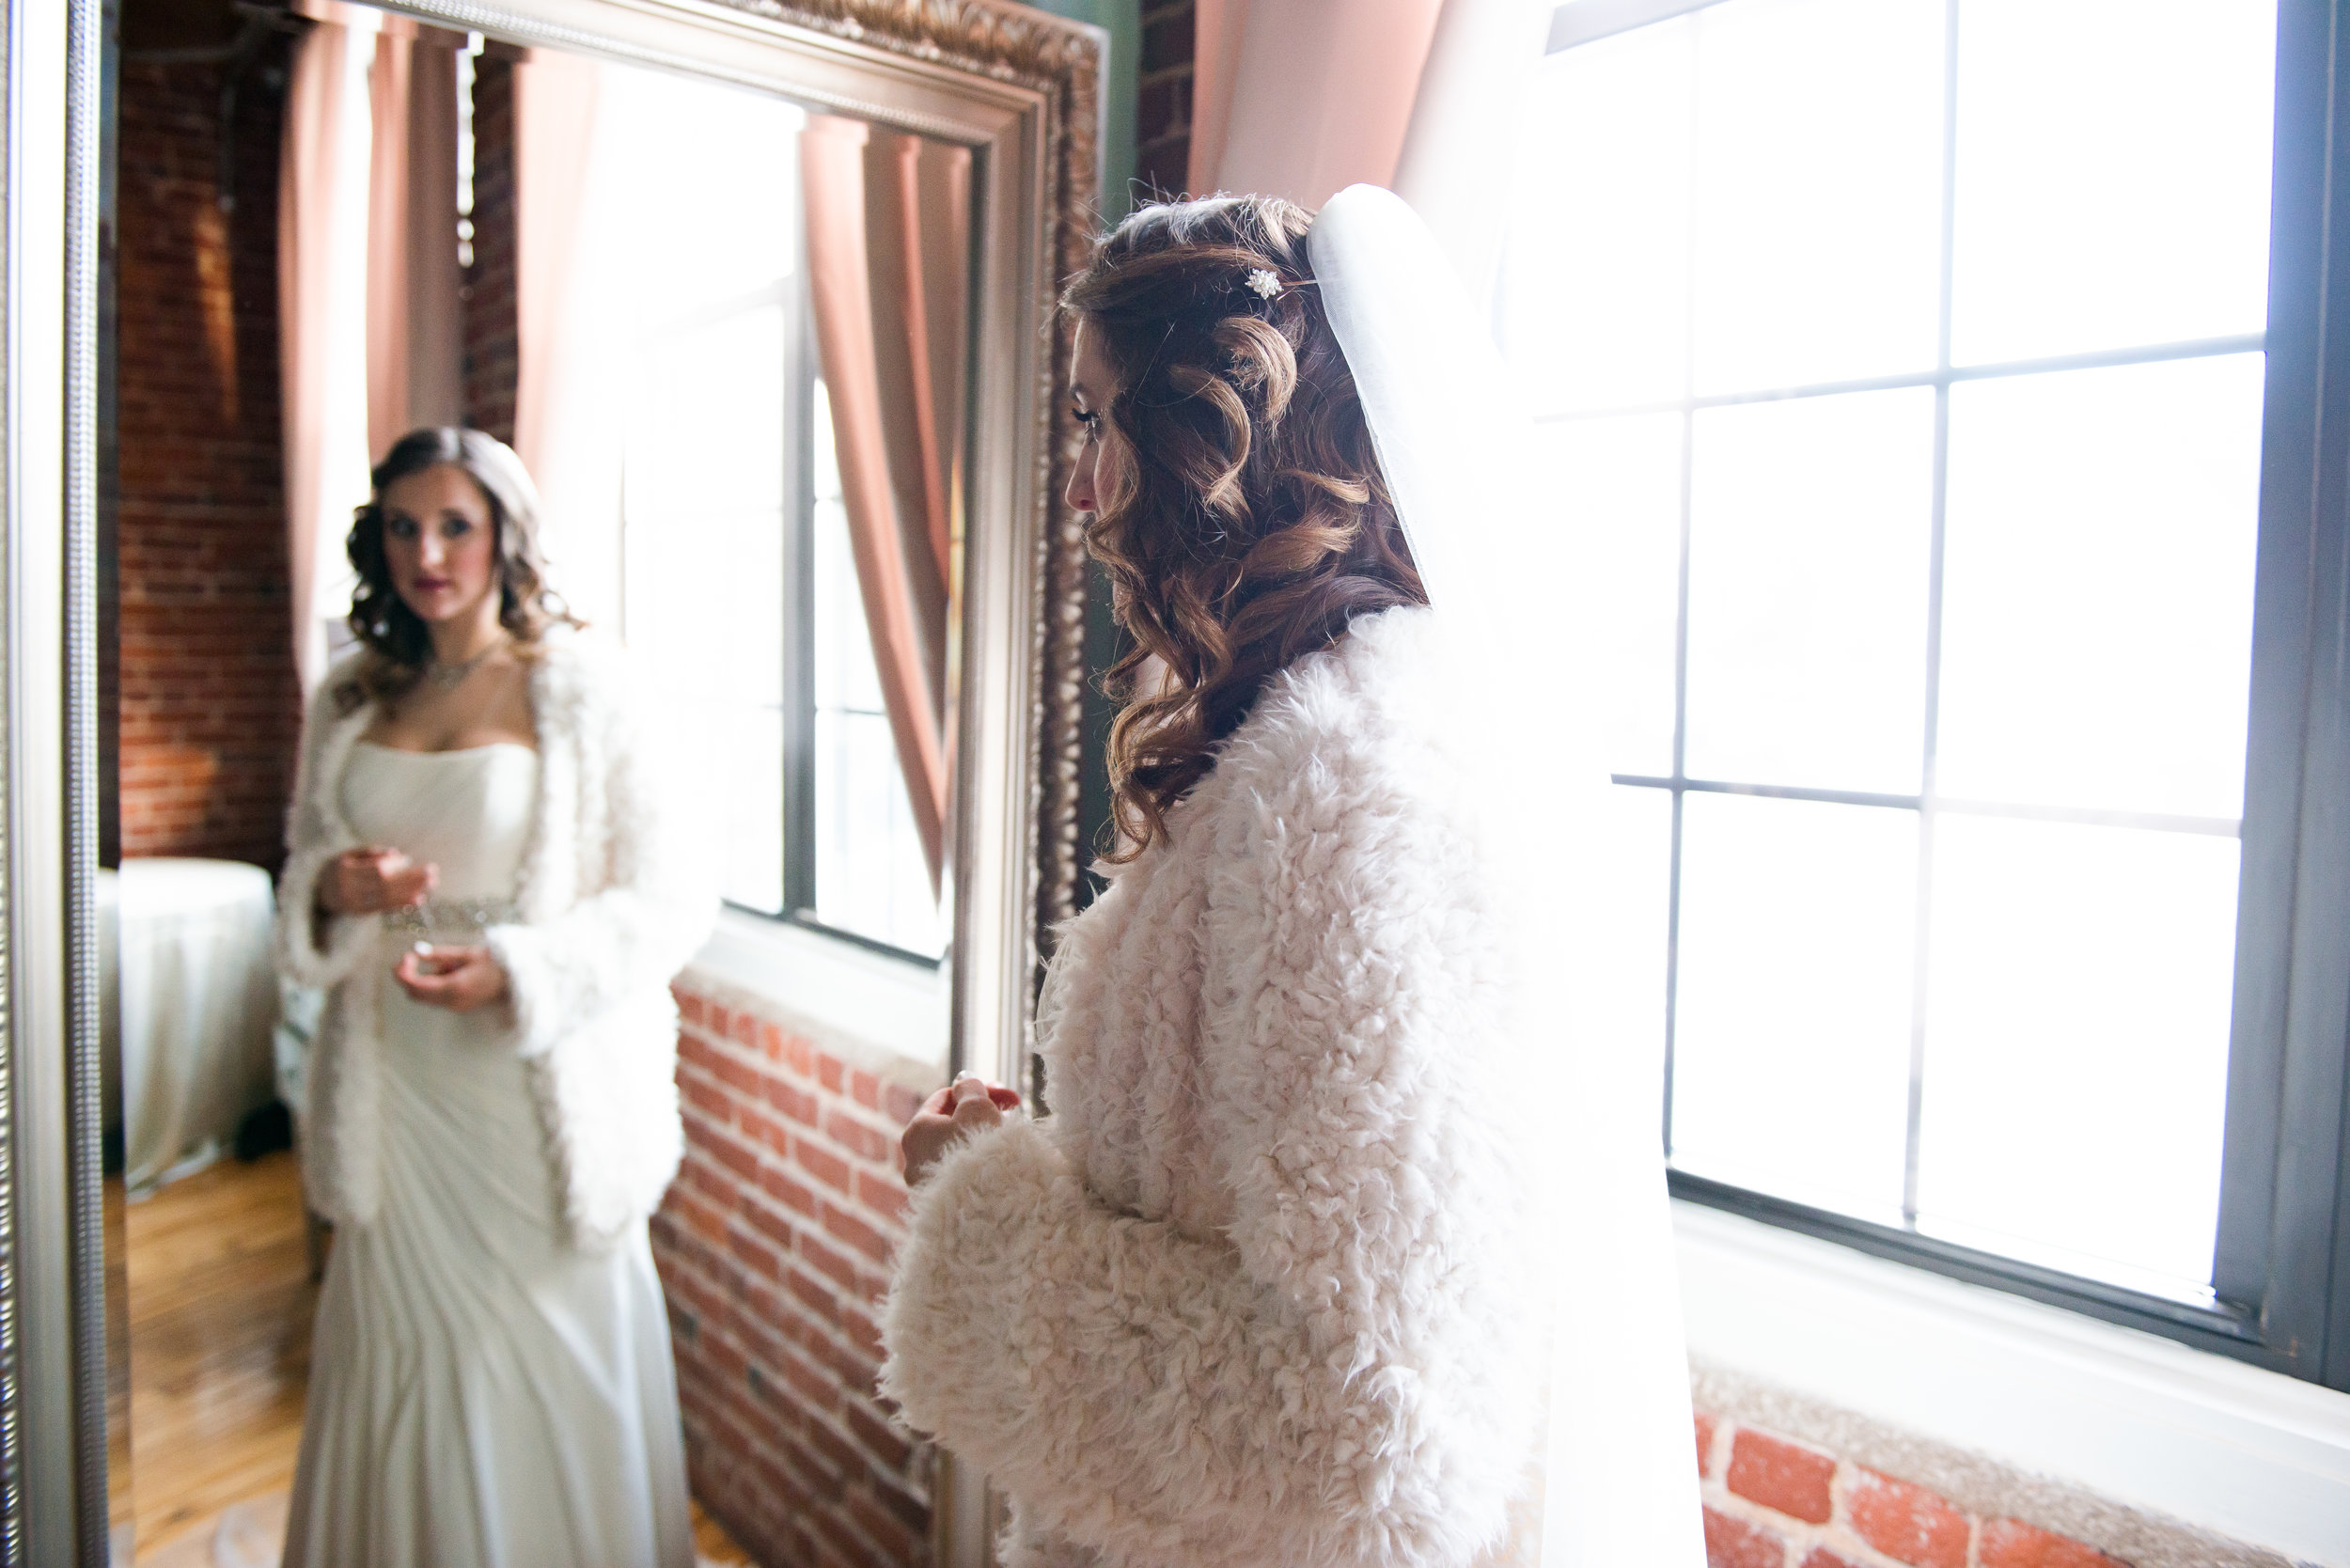 LUV LENS_WEDDING_EMILY AND ANDREW-168.jpg